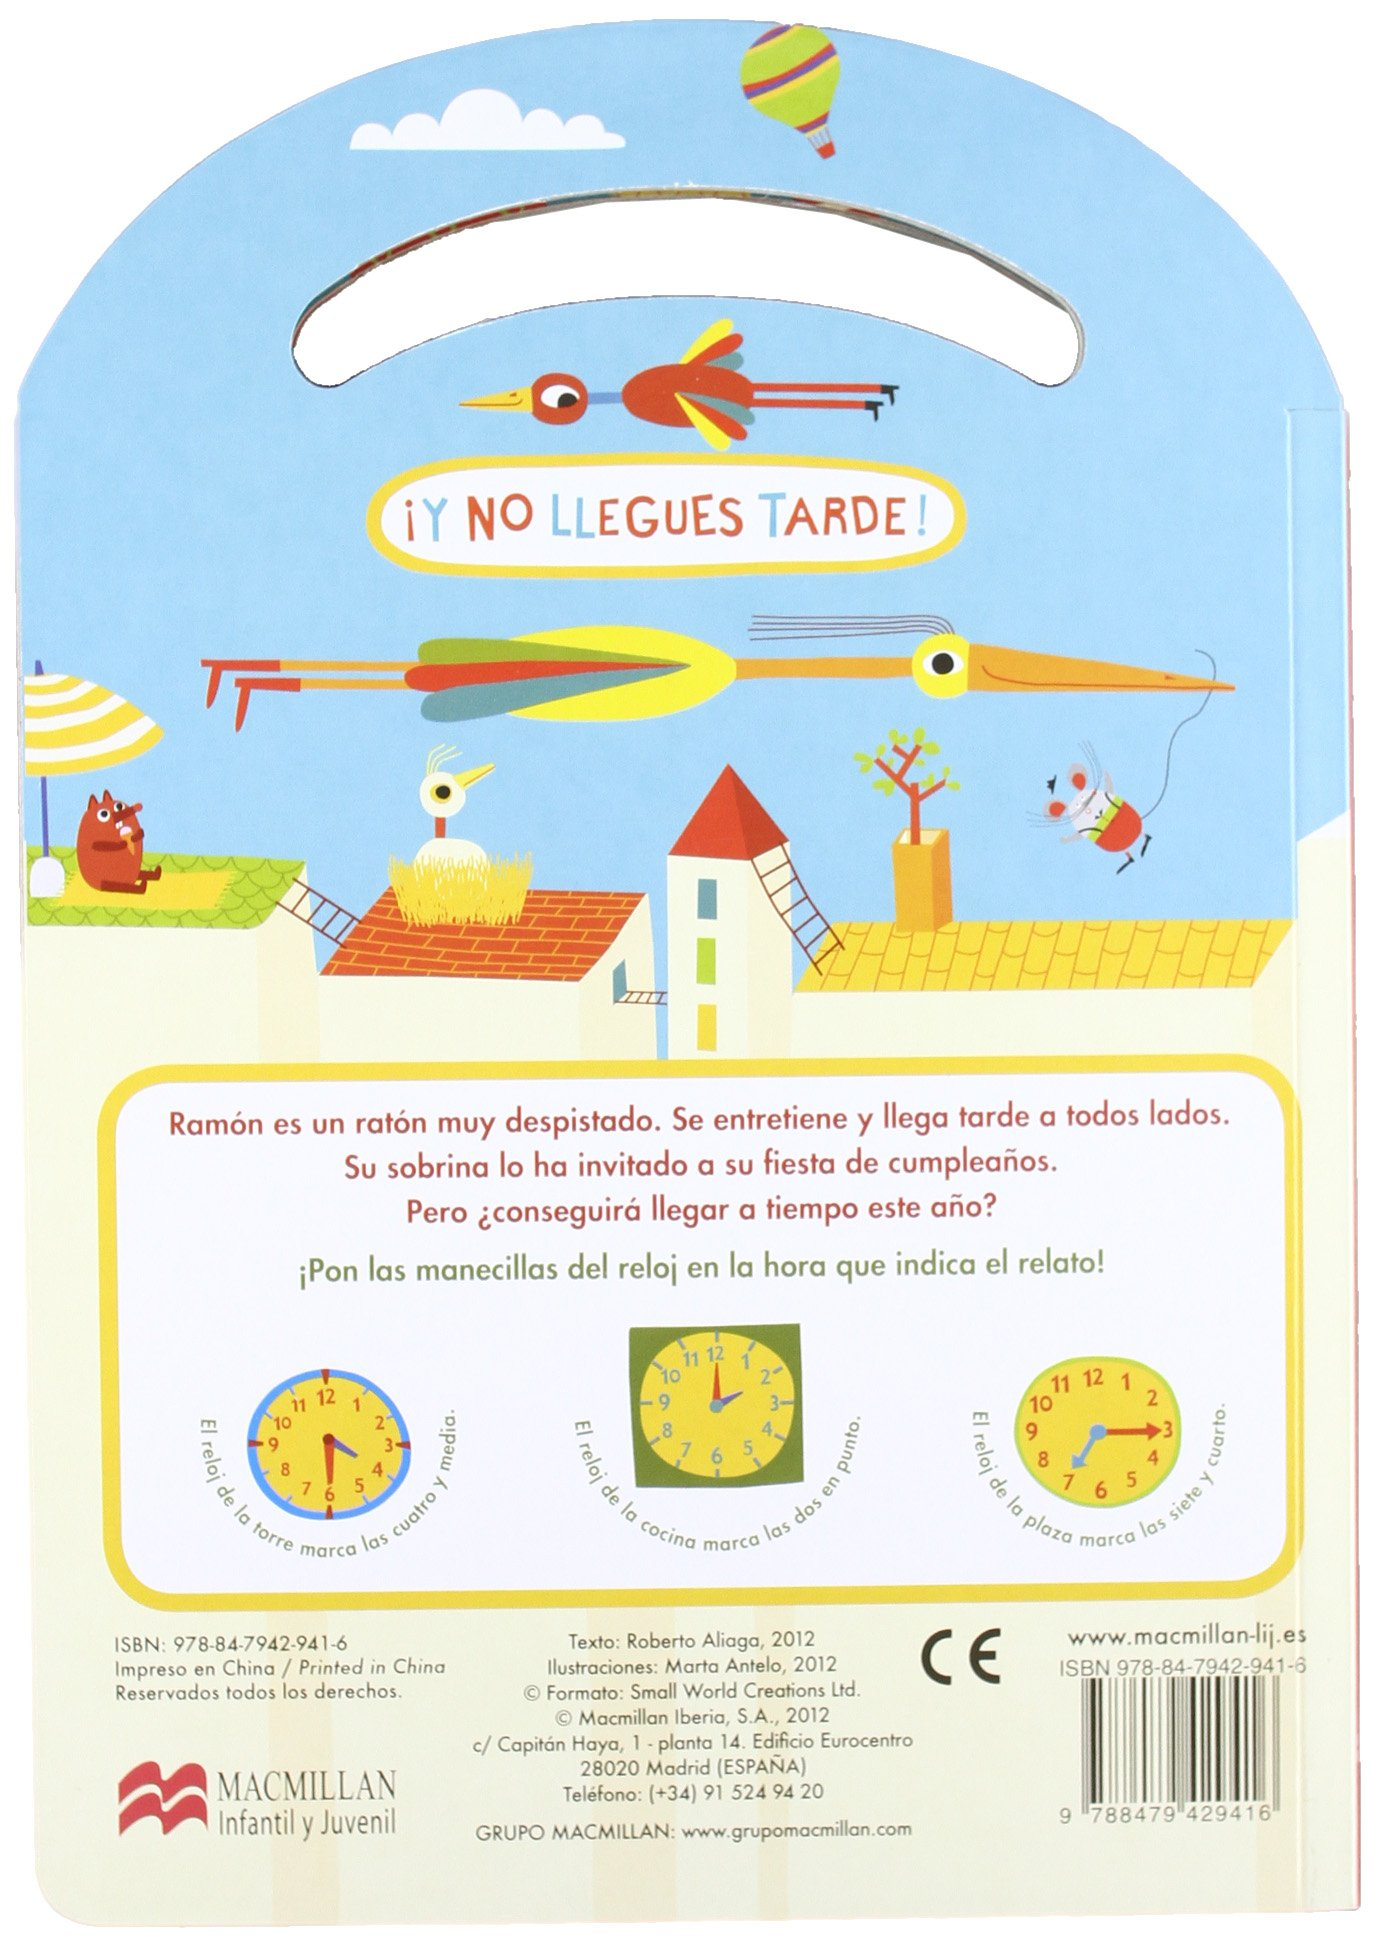 Amazon.com: ¡Y no llegues tarde! (Spanish Edition) (9788479429416): Roberto Aliaga, Marta Antelo: Books